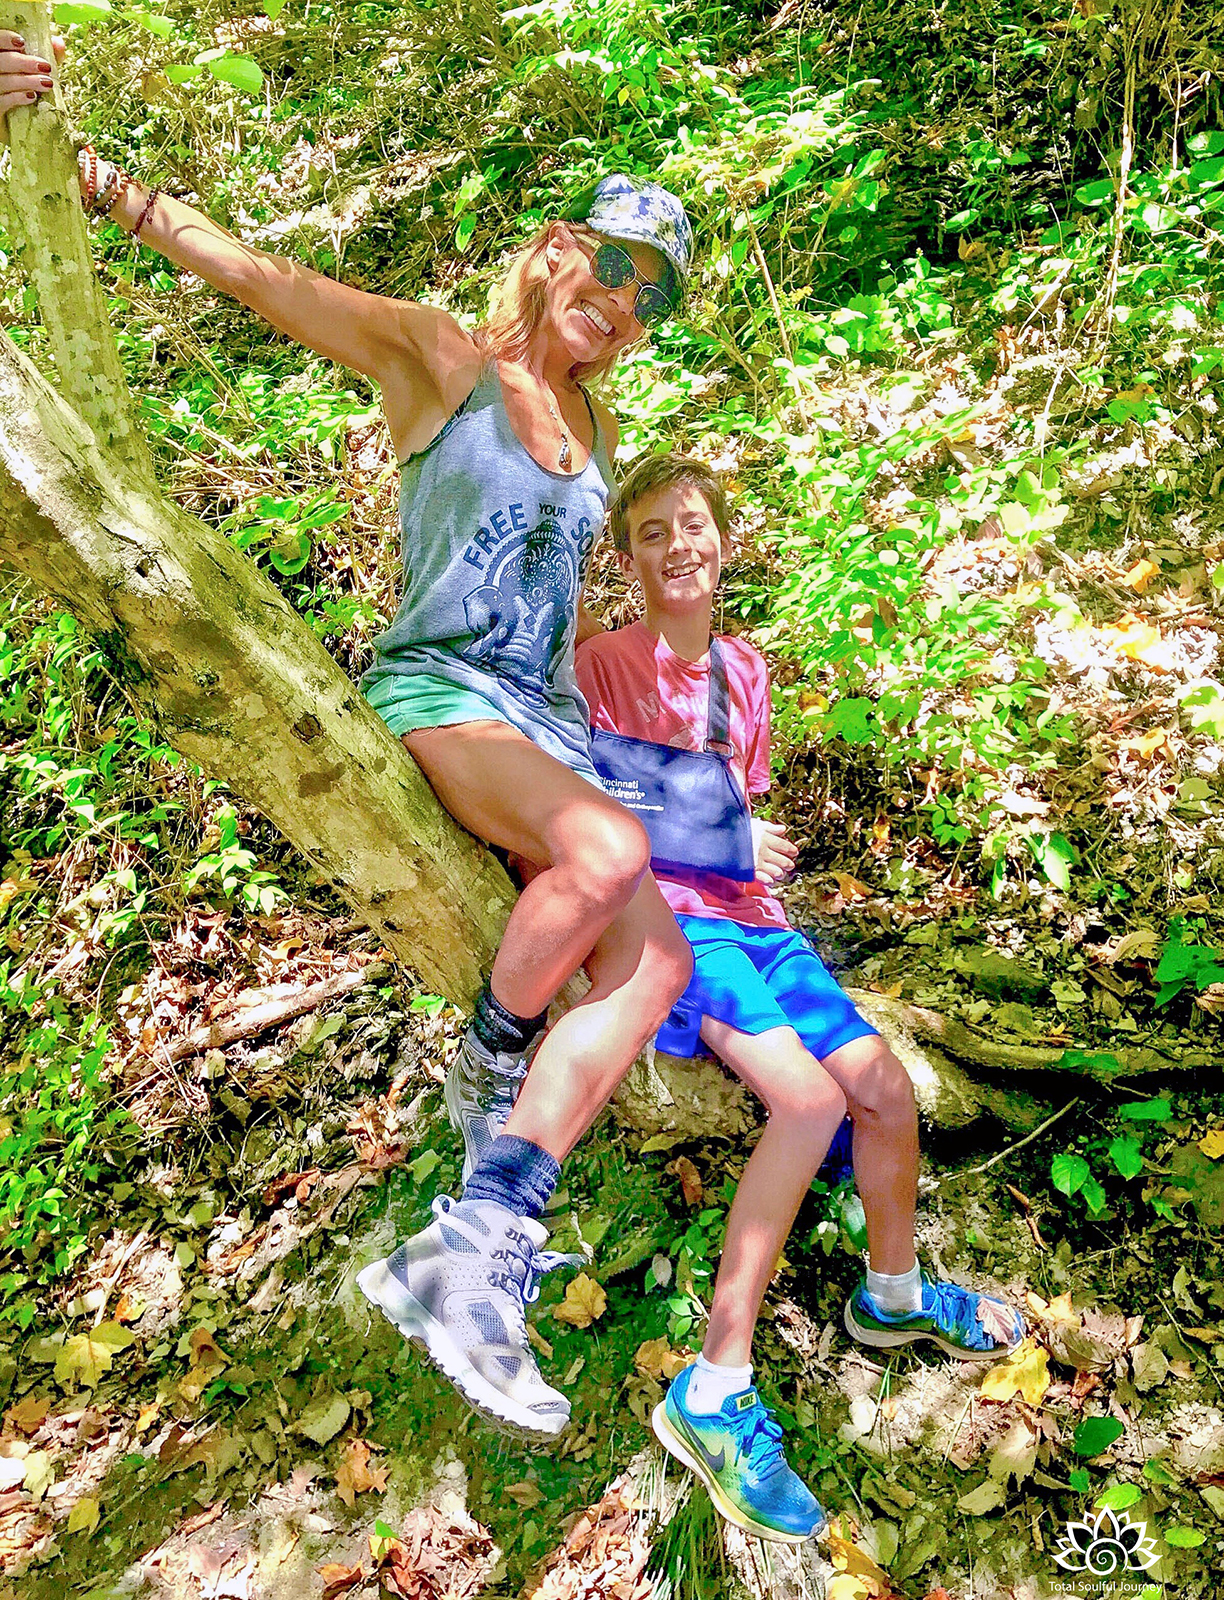 Bonding time hiking with my son at Red River Gorge.